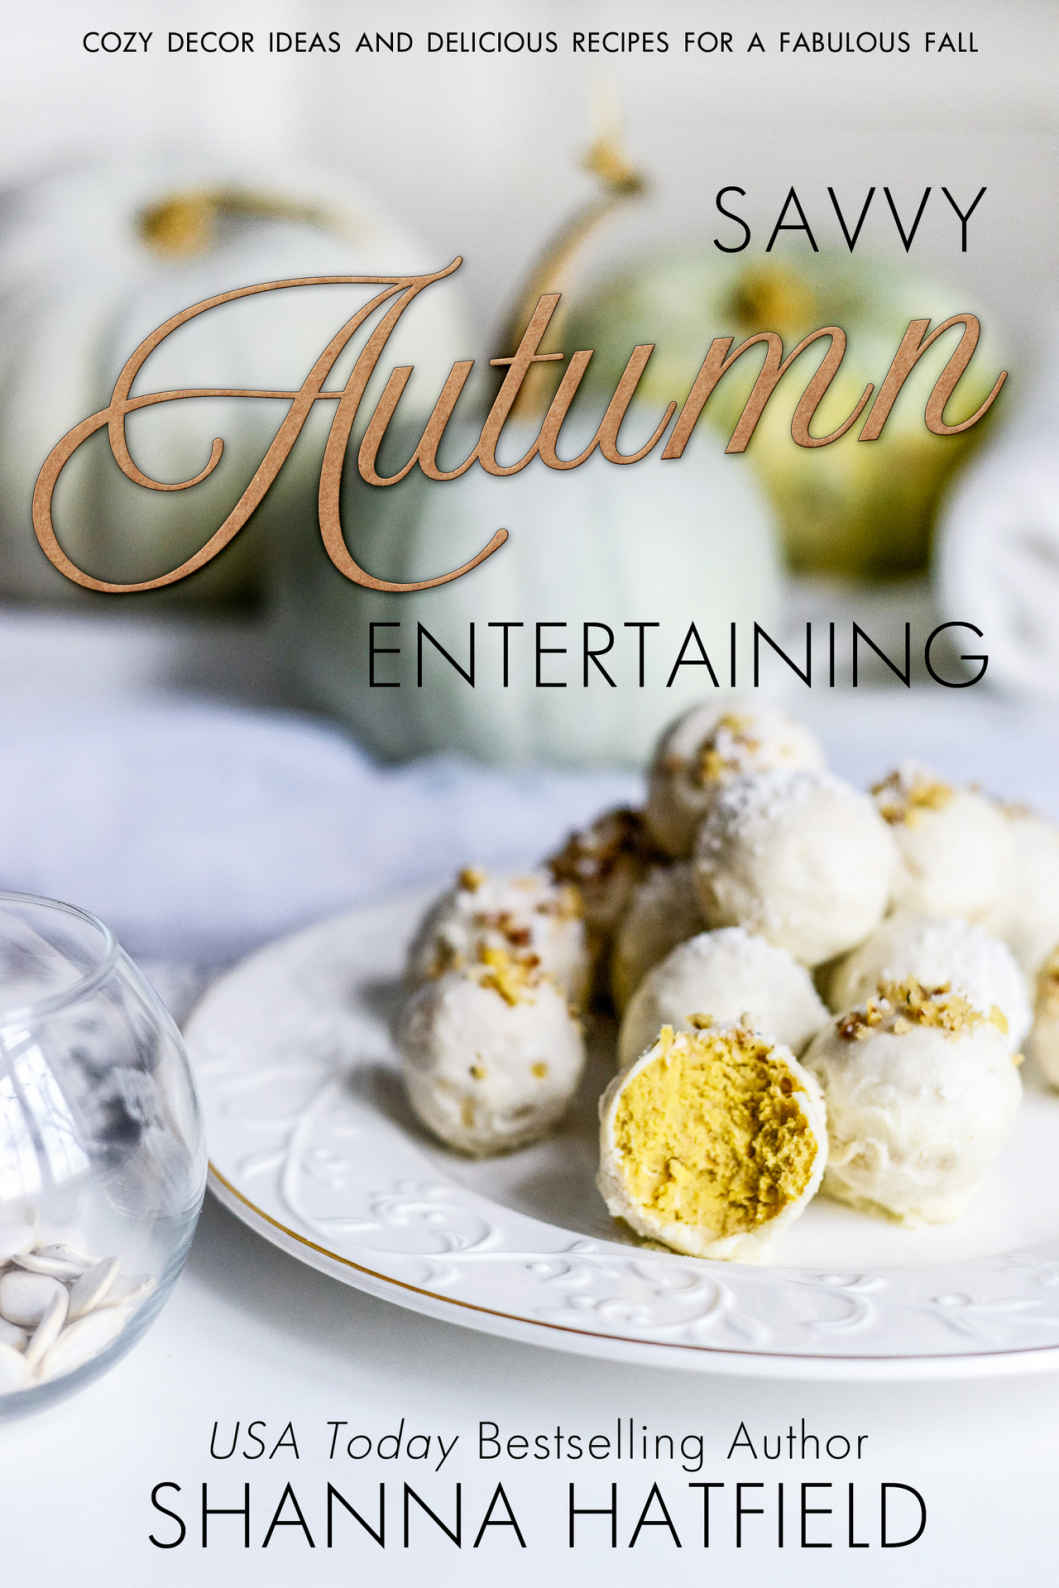 http://www.amazon.com/Savvy-Autumn-Entertaining-Book-ebook/dp/B0093EVHE2/ref=as_sl_pc_ss_til?tag=lettfromahome-20&linkCode=w01&linkId=VM5YIDCJ2LILUABH&creativeASIN=B0093EVHE2#reader_B0093EVHE2